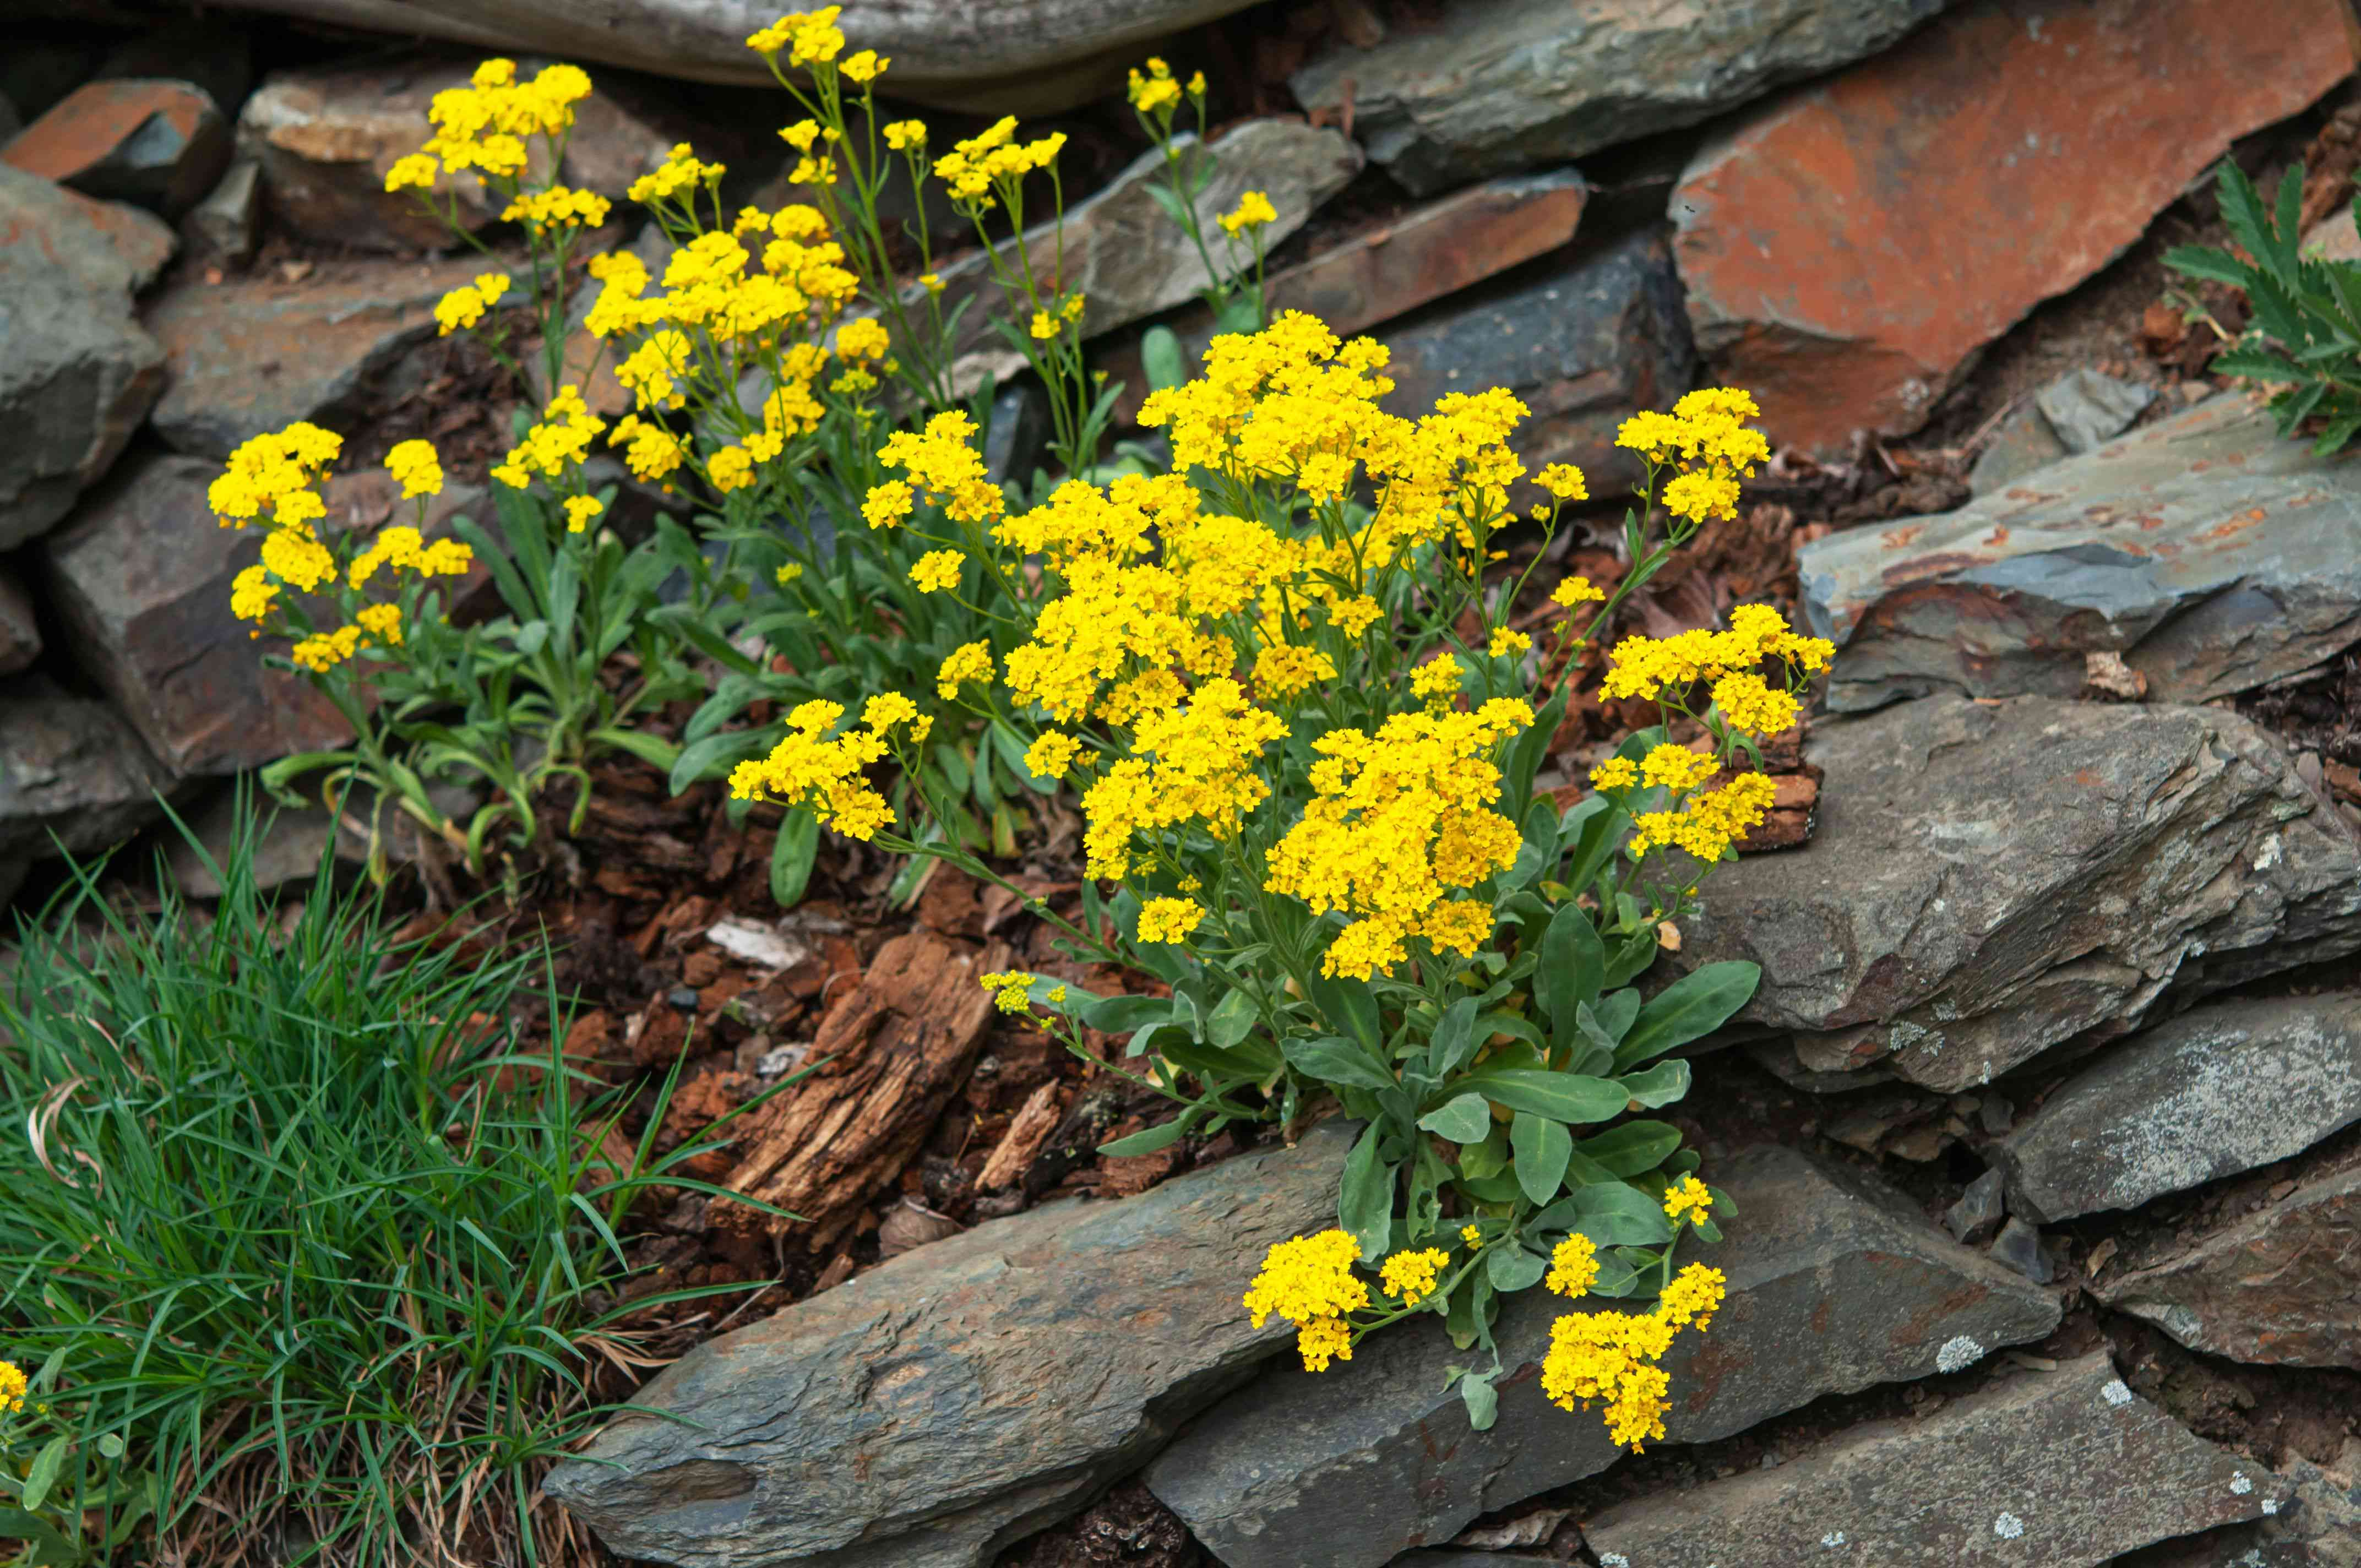 Yellow alyssum plant with small yellow flower clusters surrounded by rocks and grass